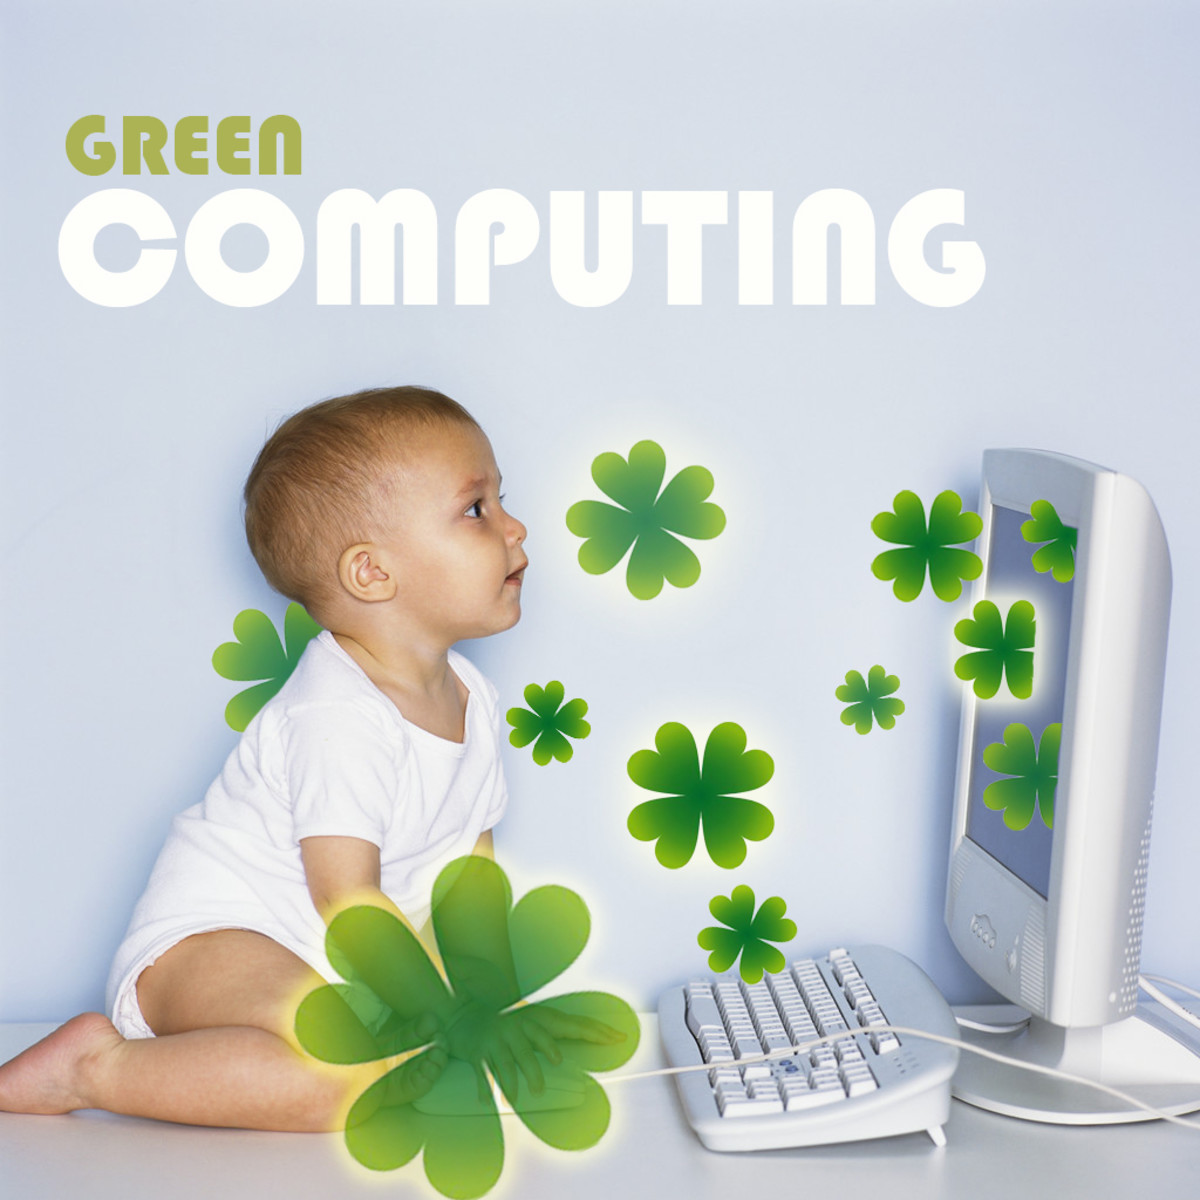 5 ways to promote Green computing